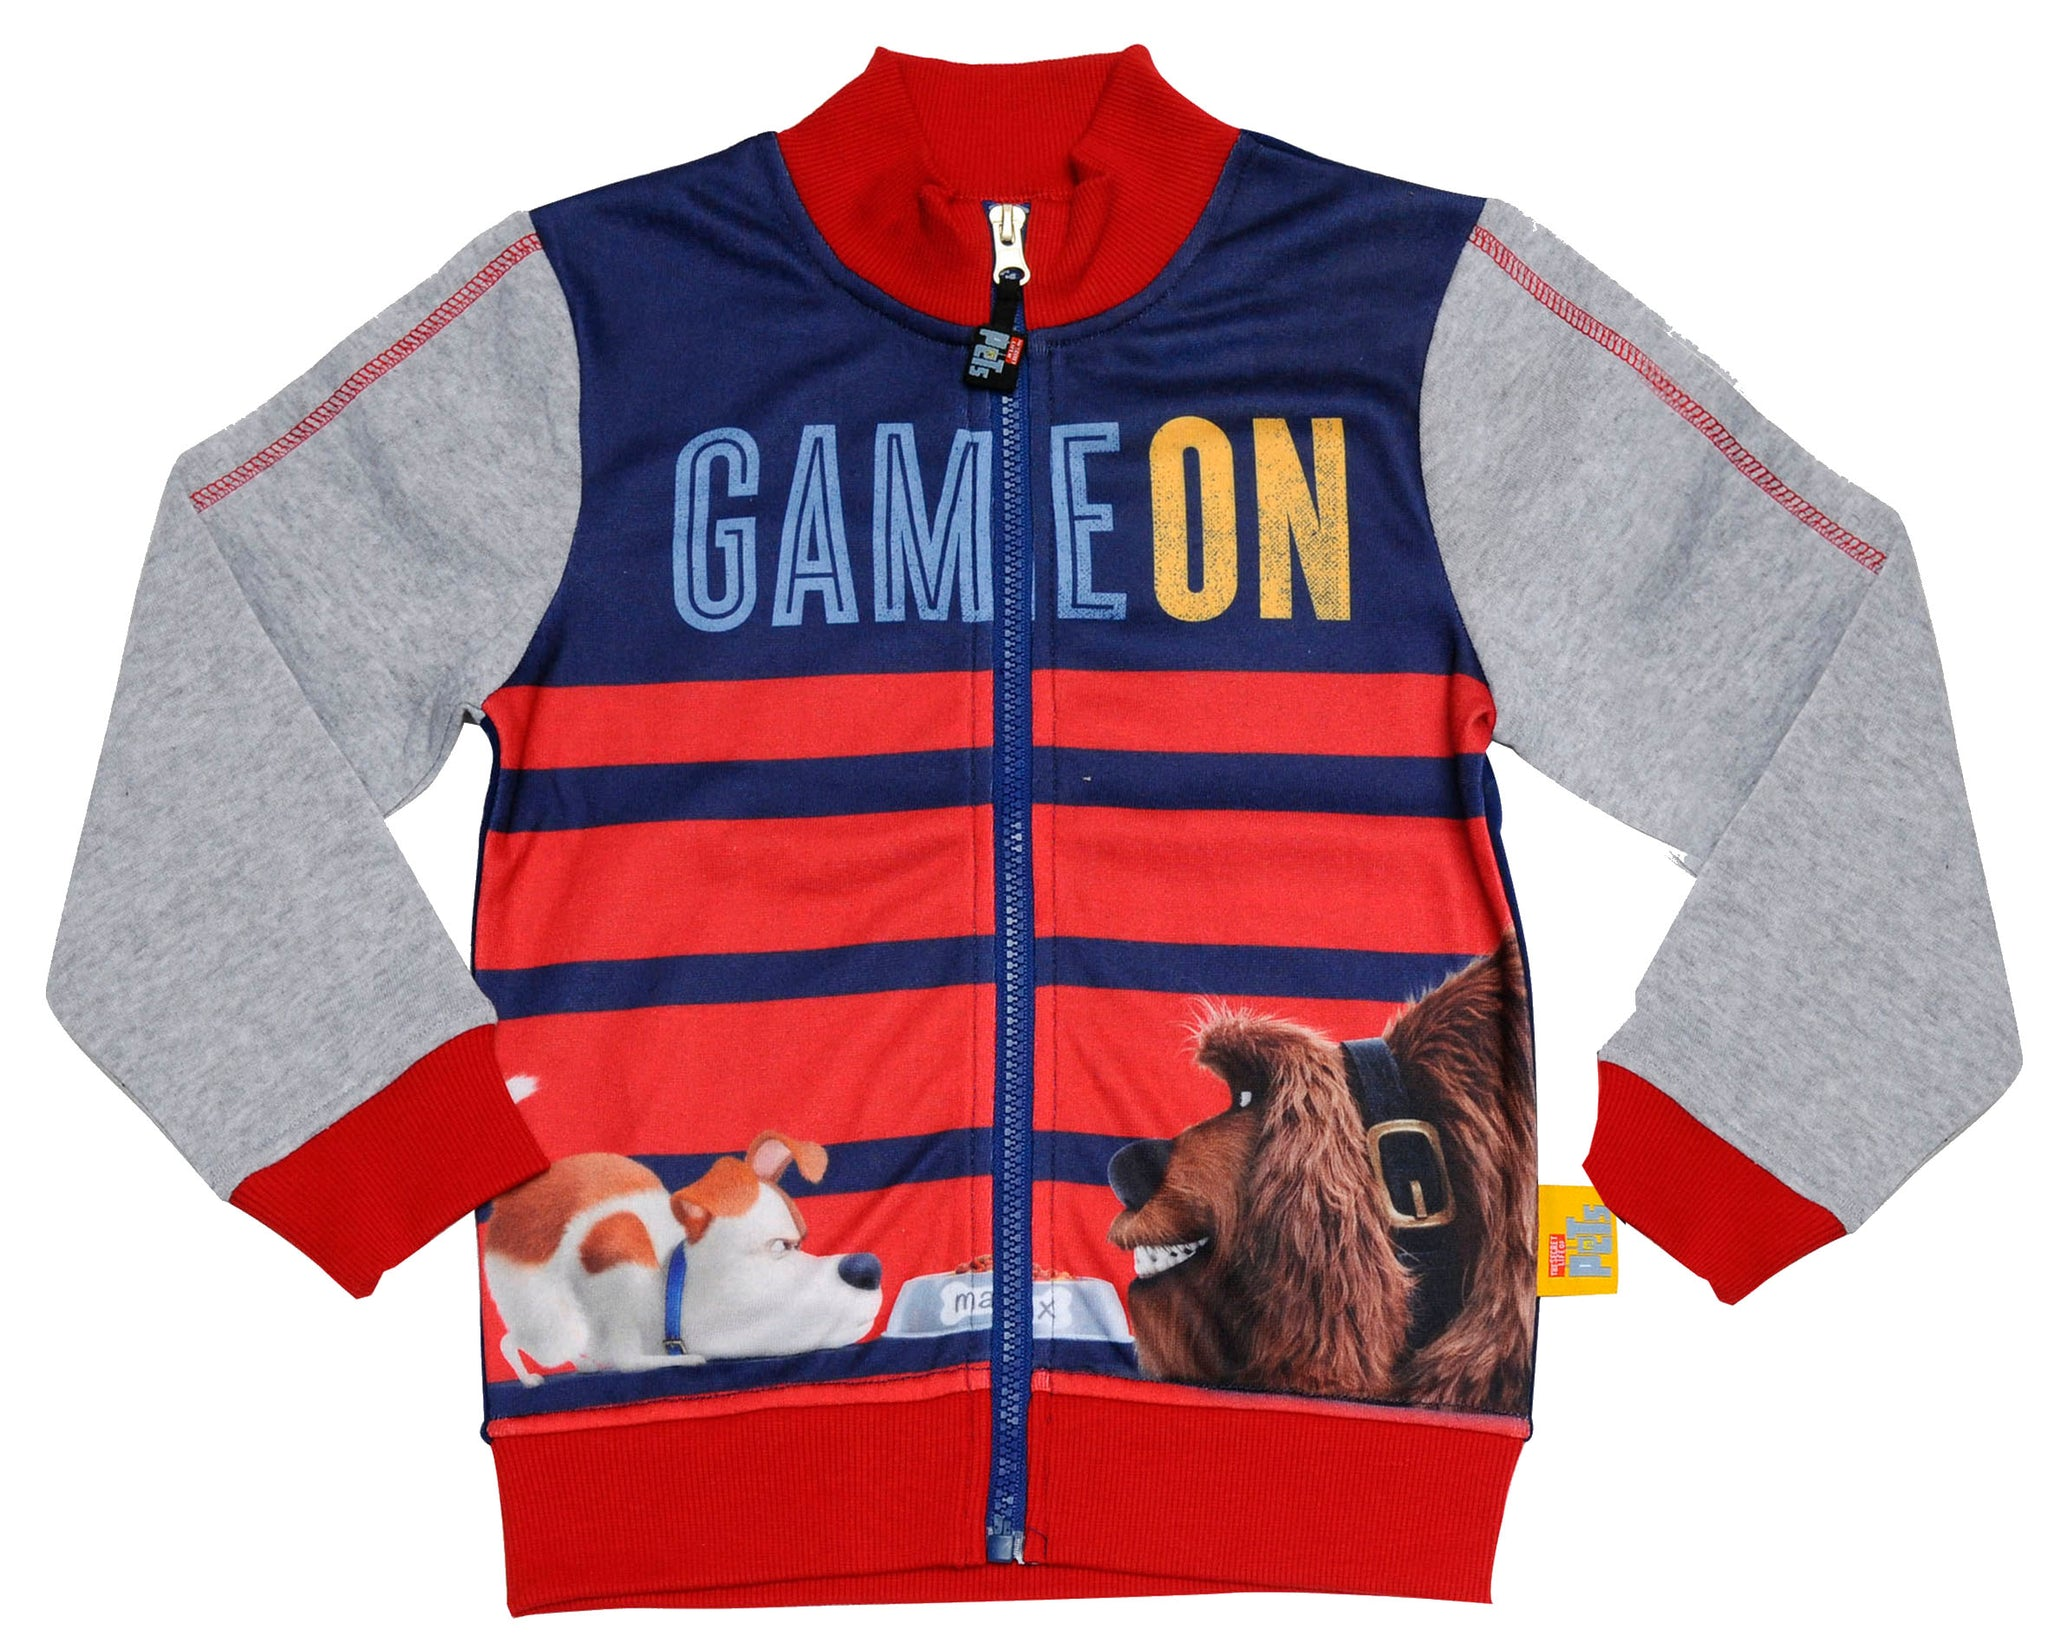 The Secret Life of Pets Game on text jumper with zip fastening